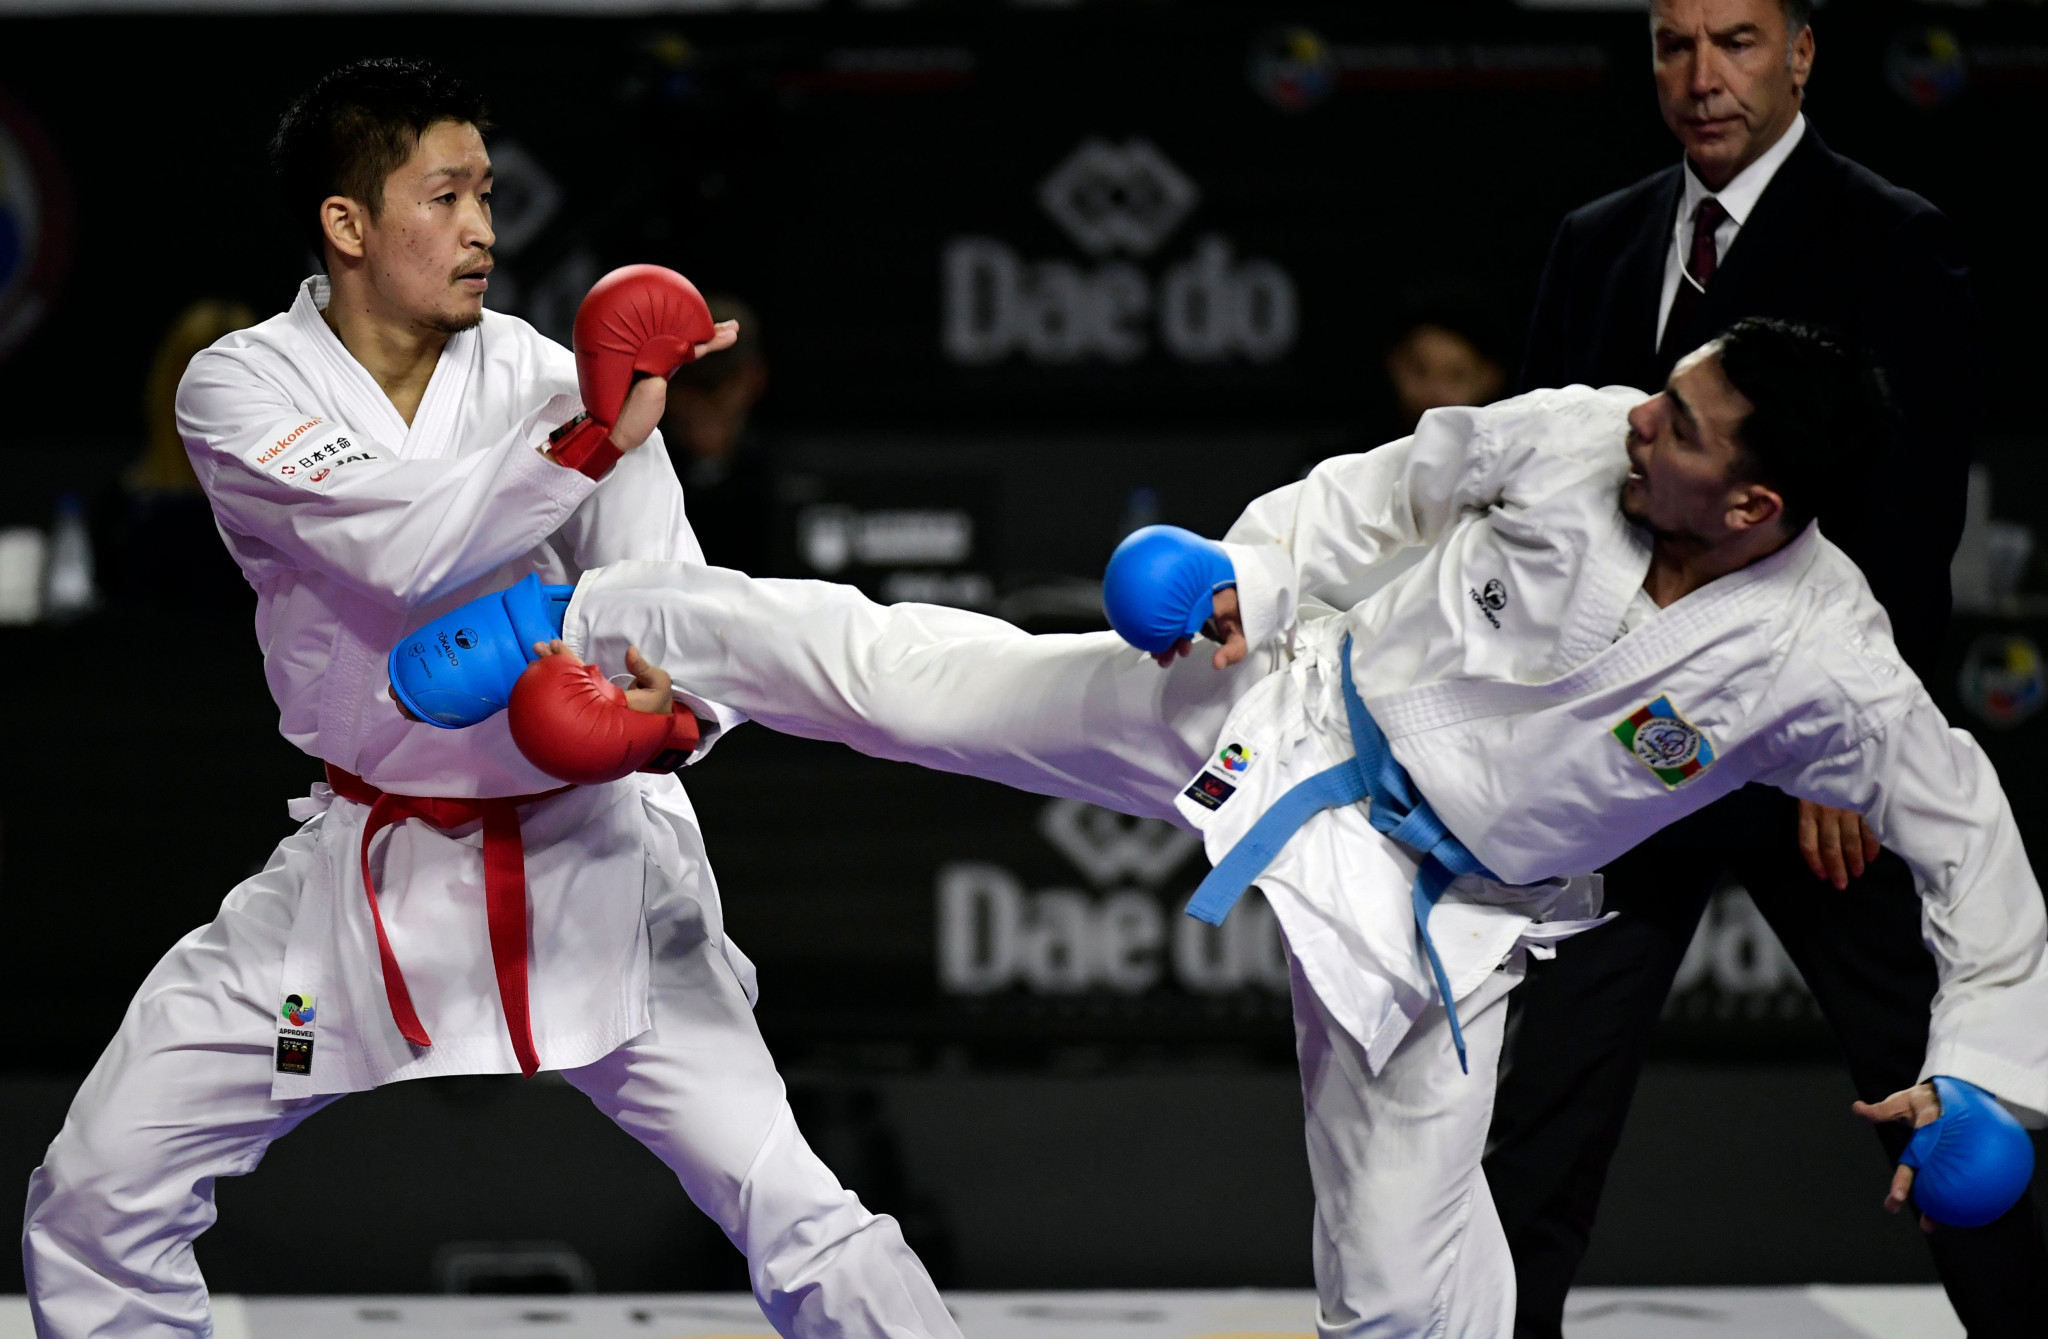 WKF publishes simplified version of COVID-19 guidelines